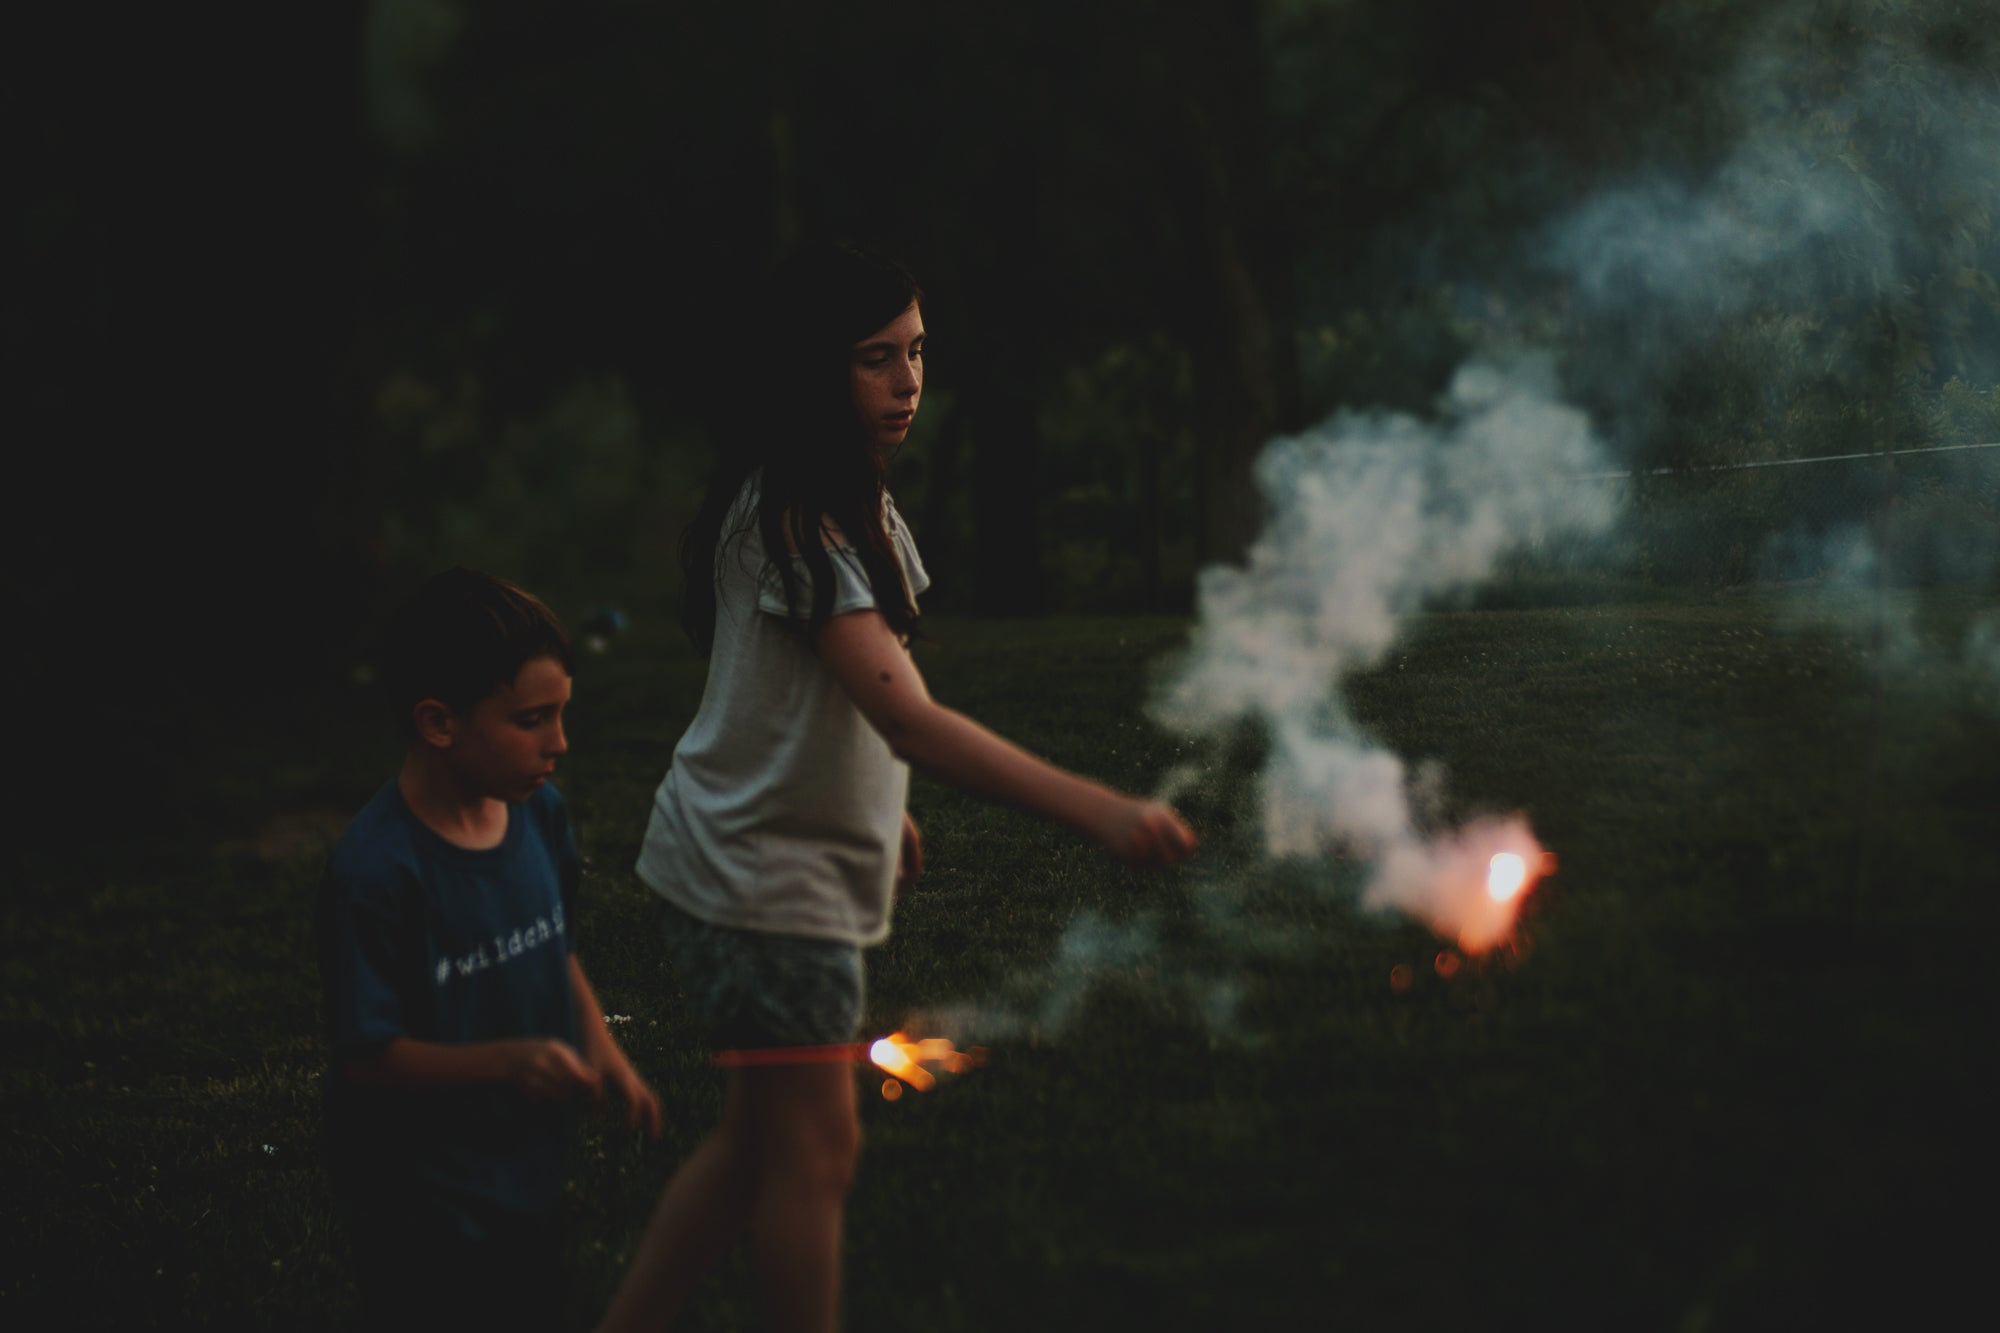 girl and boy play with smoking fireworks looking nervous journey story amy cyphers